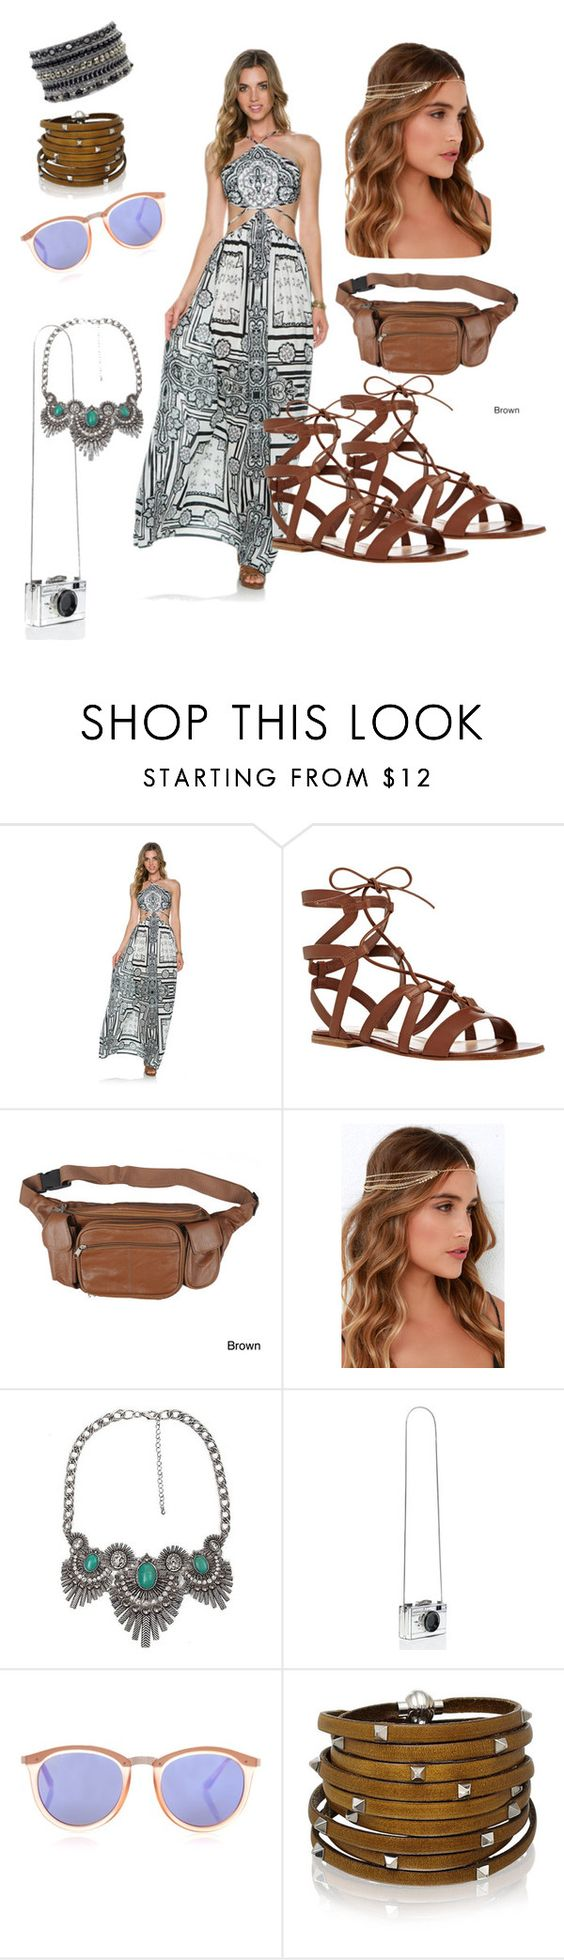 """""""Cochella #2"""" by naylapramita ❤ liked on Polyvore featuring Gianvito Rossi, Journee Collection, LULUS, BKE, Kate Spade, Le Specs and Sif Jakobs Jewellery"""